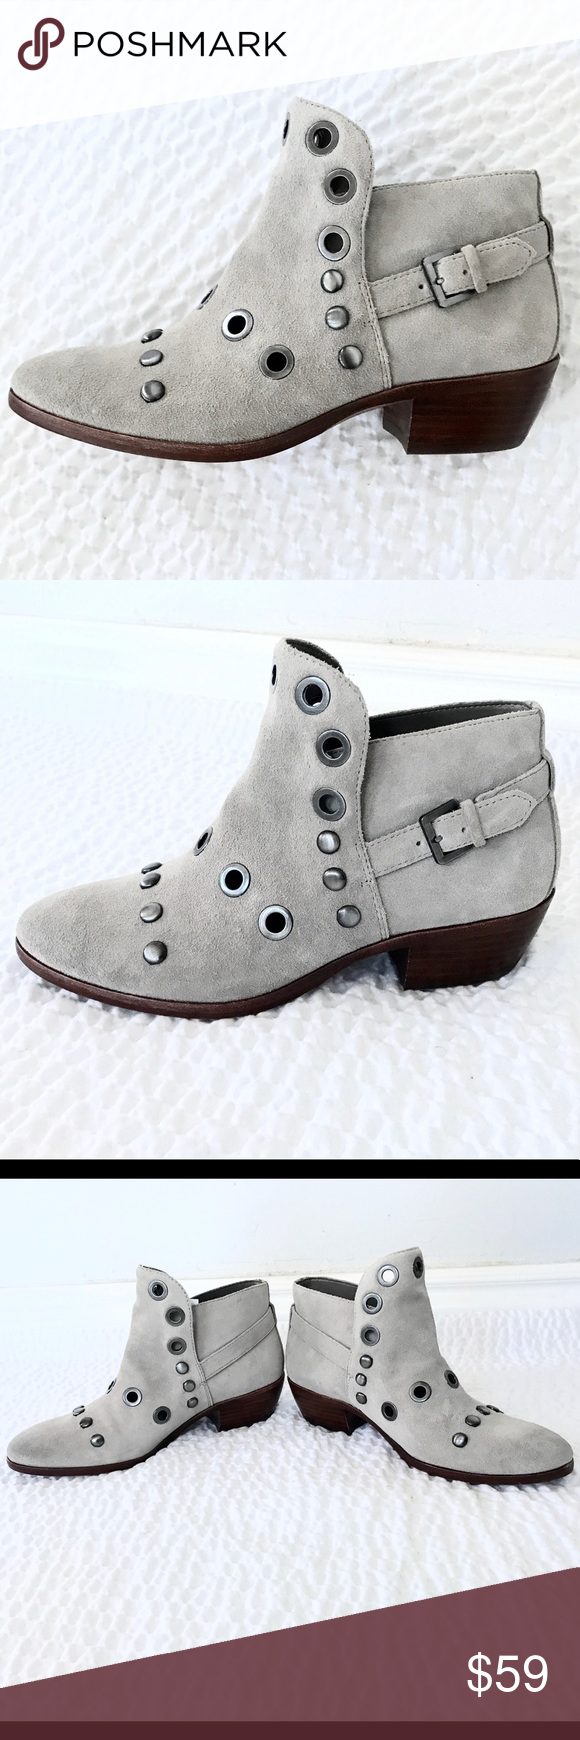 952c39a1d3cd8e ⭐️HP⭐ Sam Edelman embellished Pedra suede boots Sam Edelman Taupe Pedra  ankle boots -Heel measures approximately 45mm  2 inches -Genuine Suede  -Buckled ...